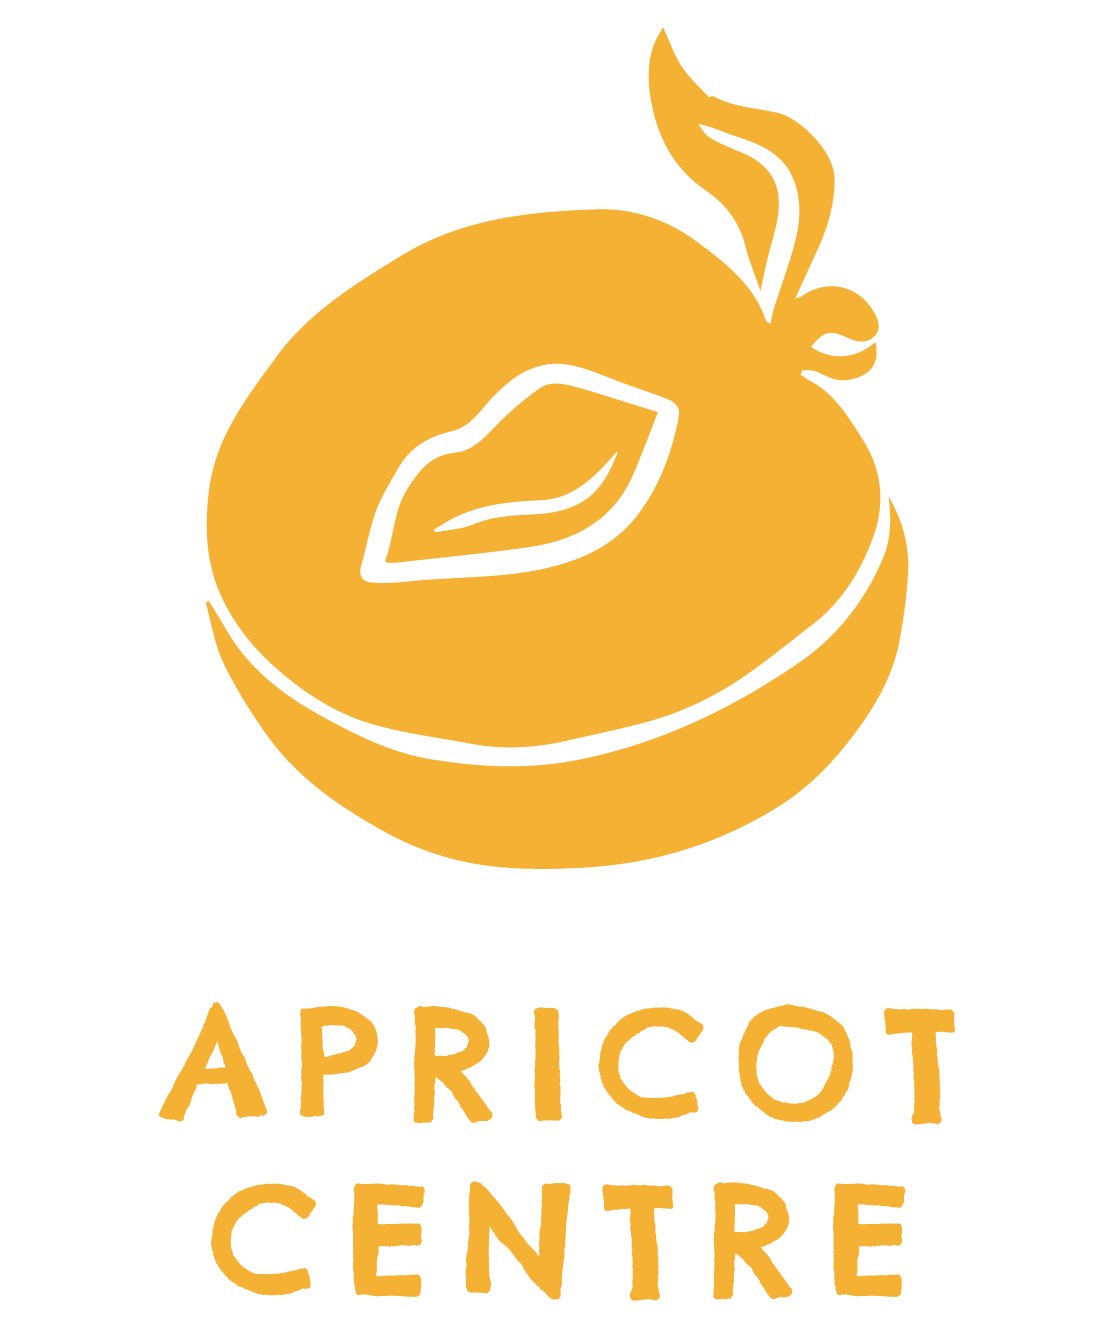 logo of the orchard project